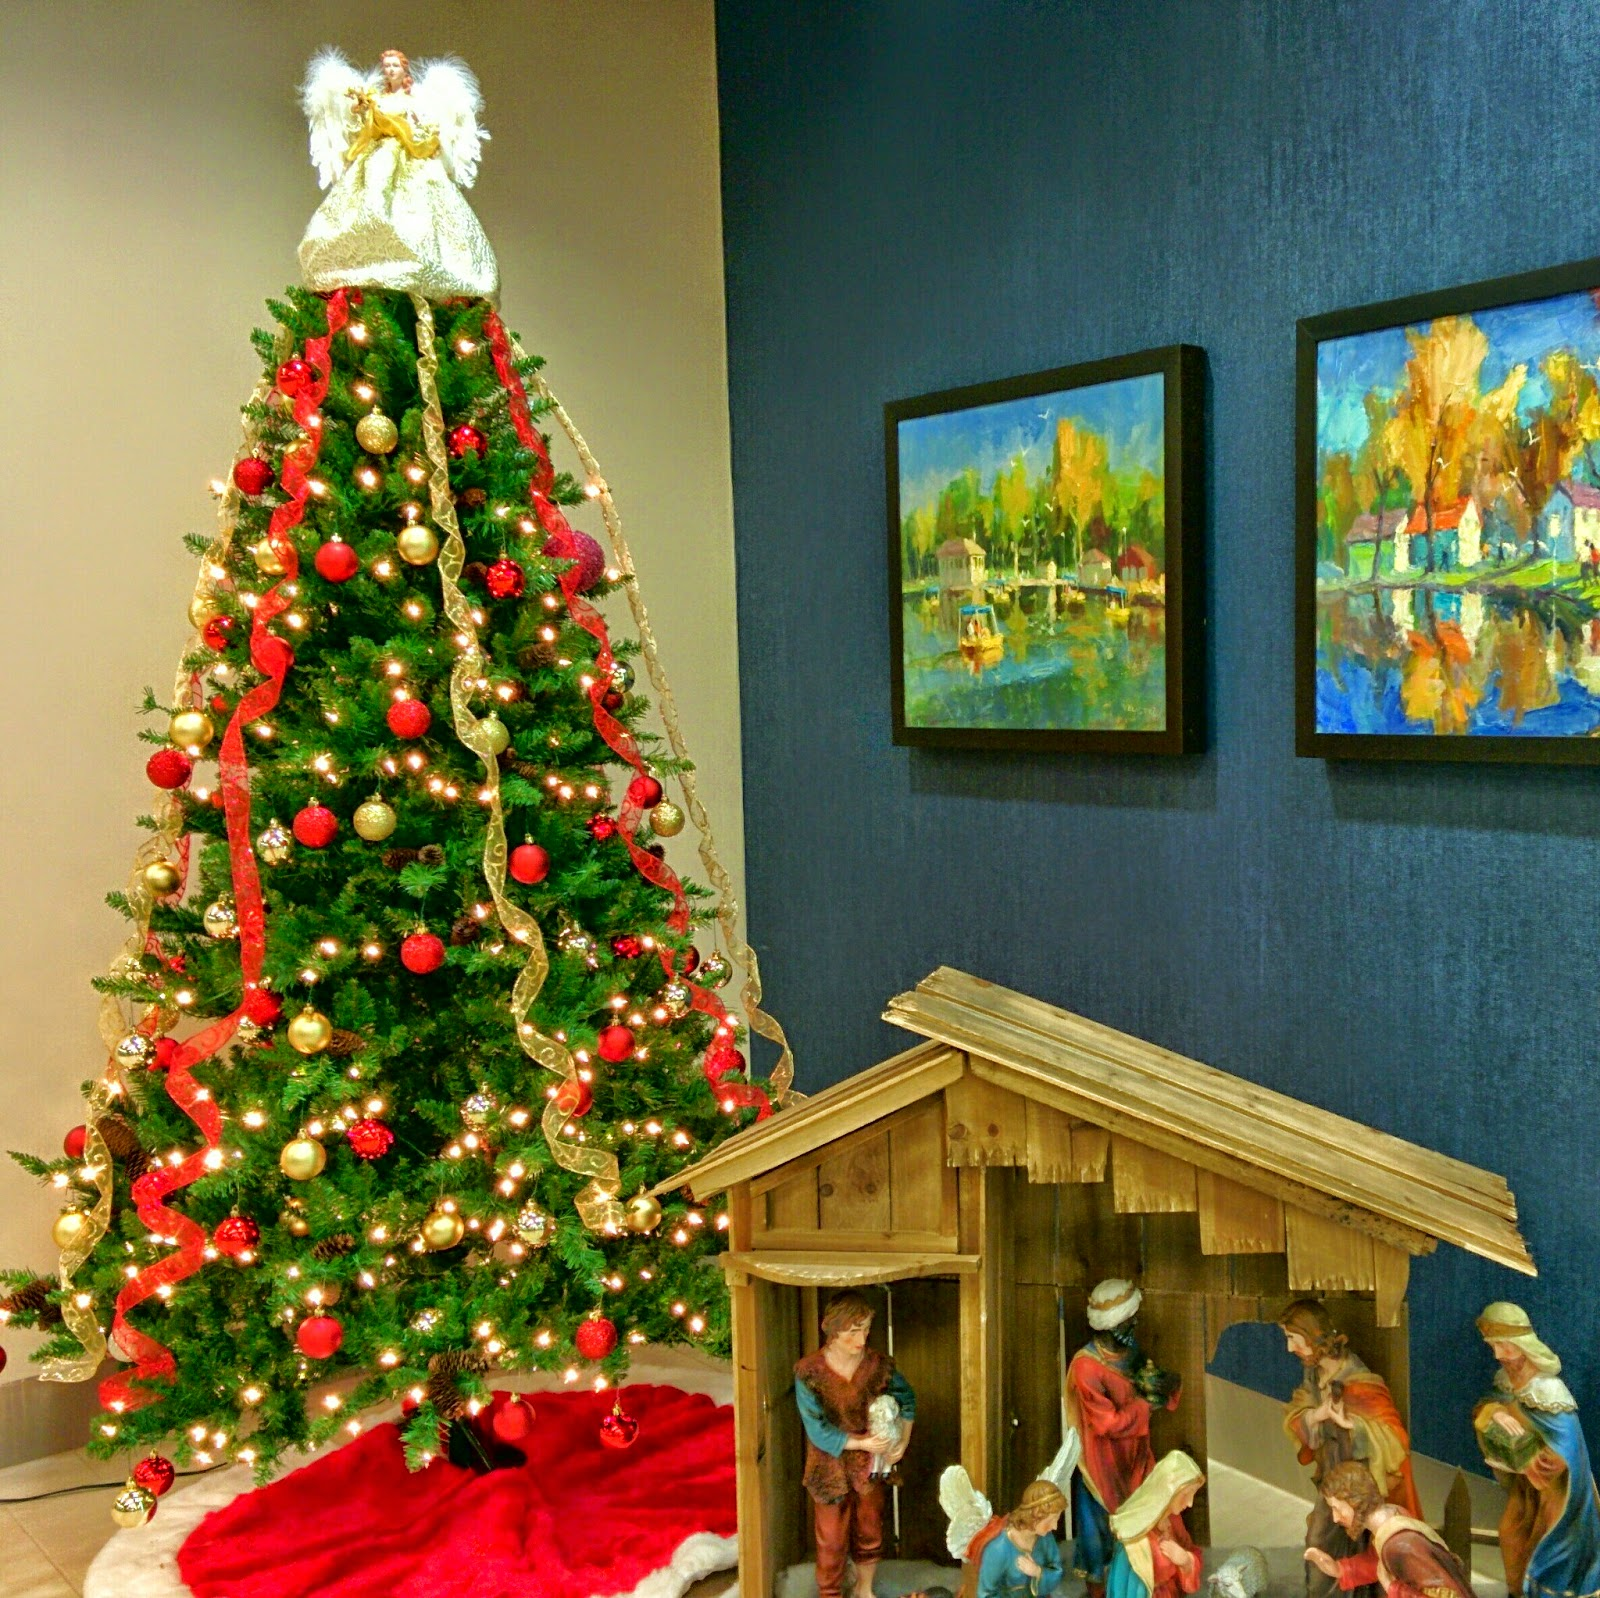 Christmas scene with manger tree